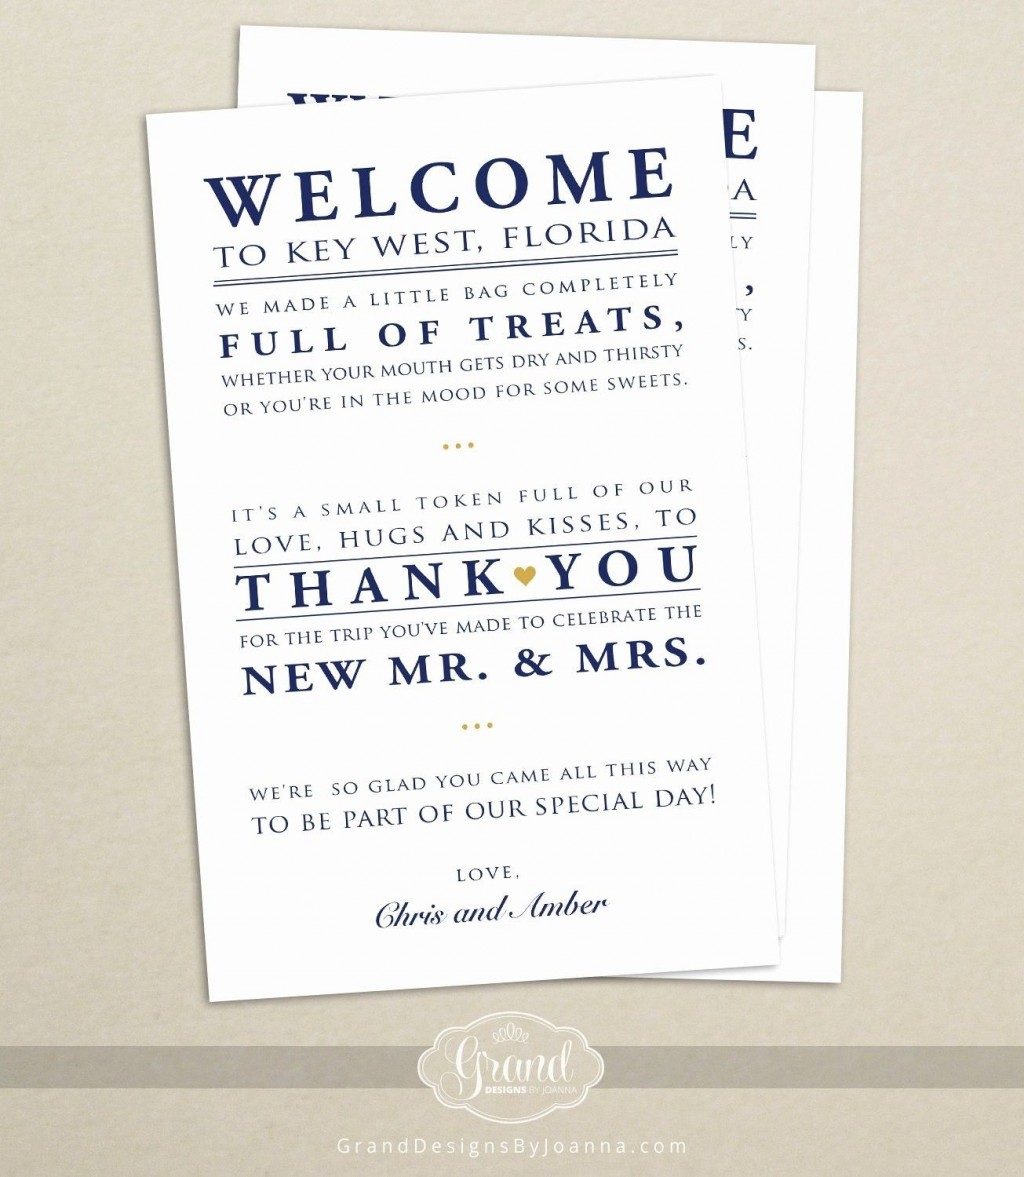 009 Stunning Wedding Guest Welcome Letter Template High Resolution Large